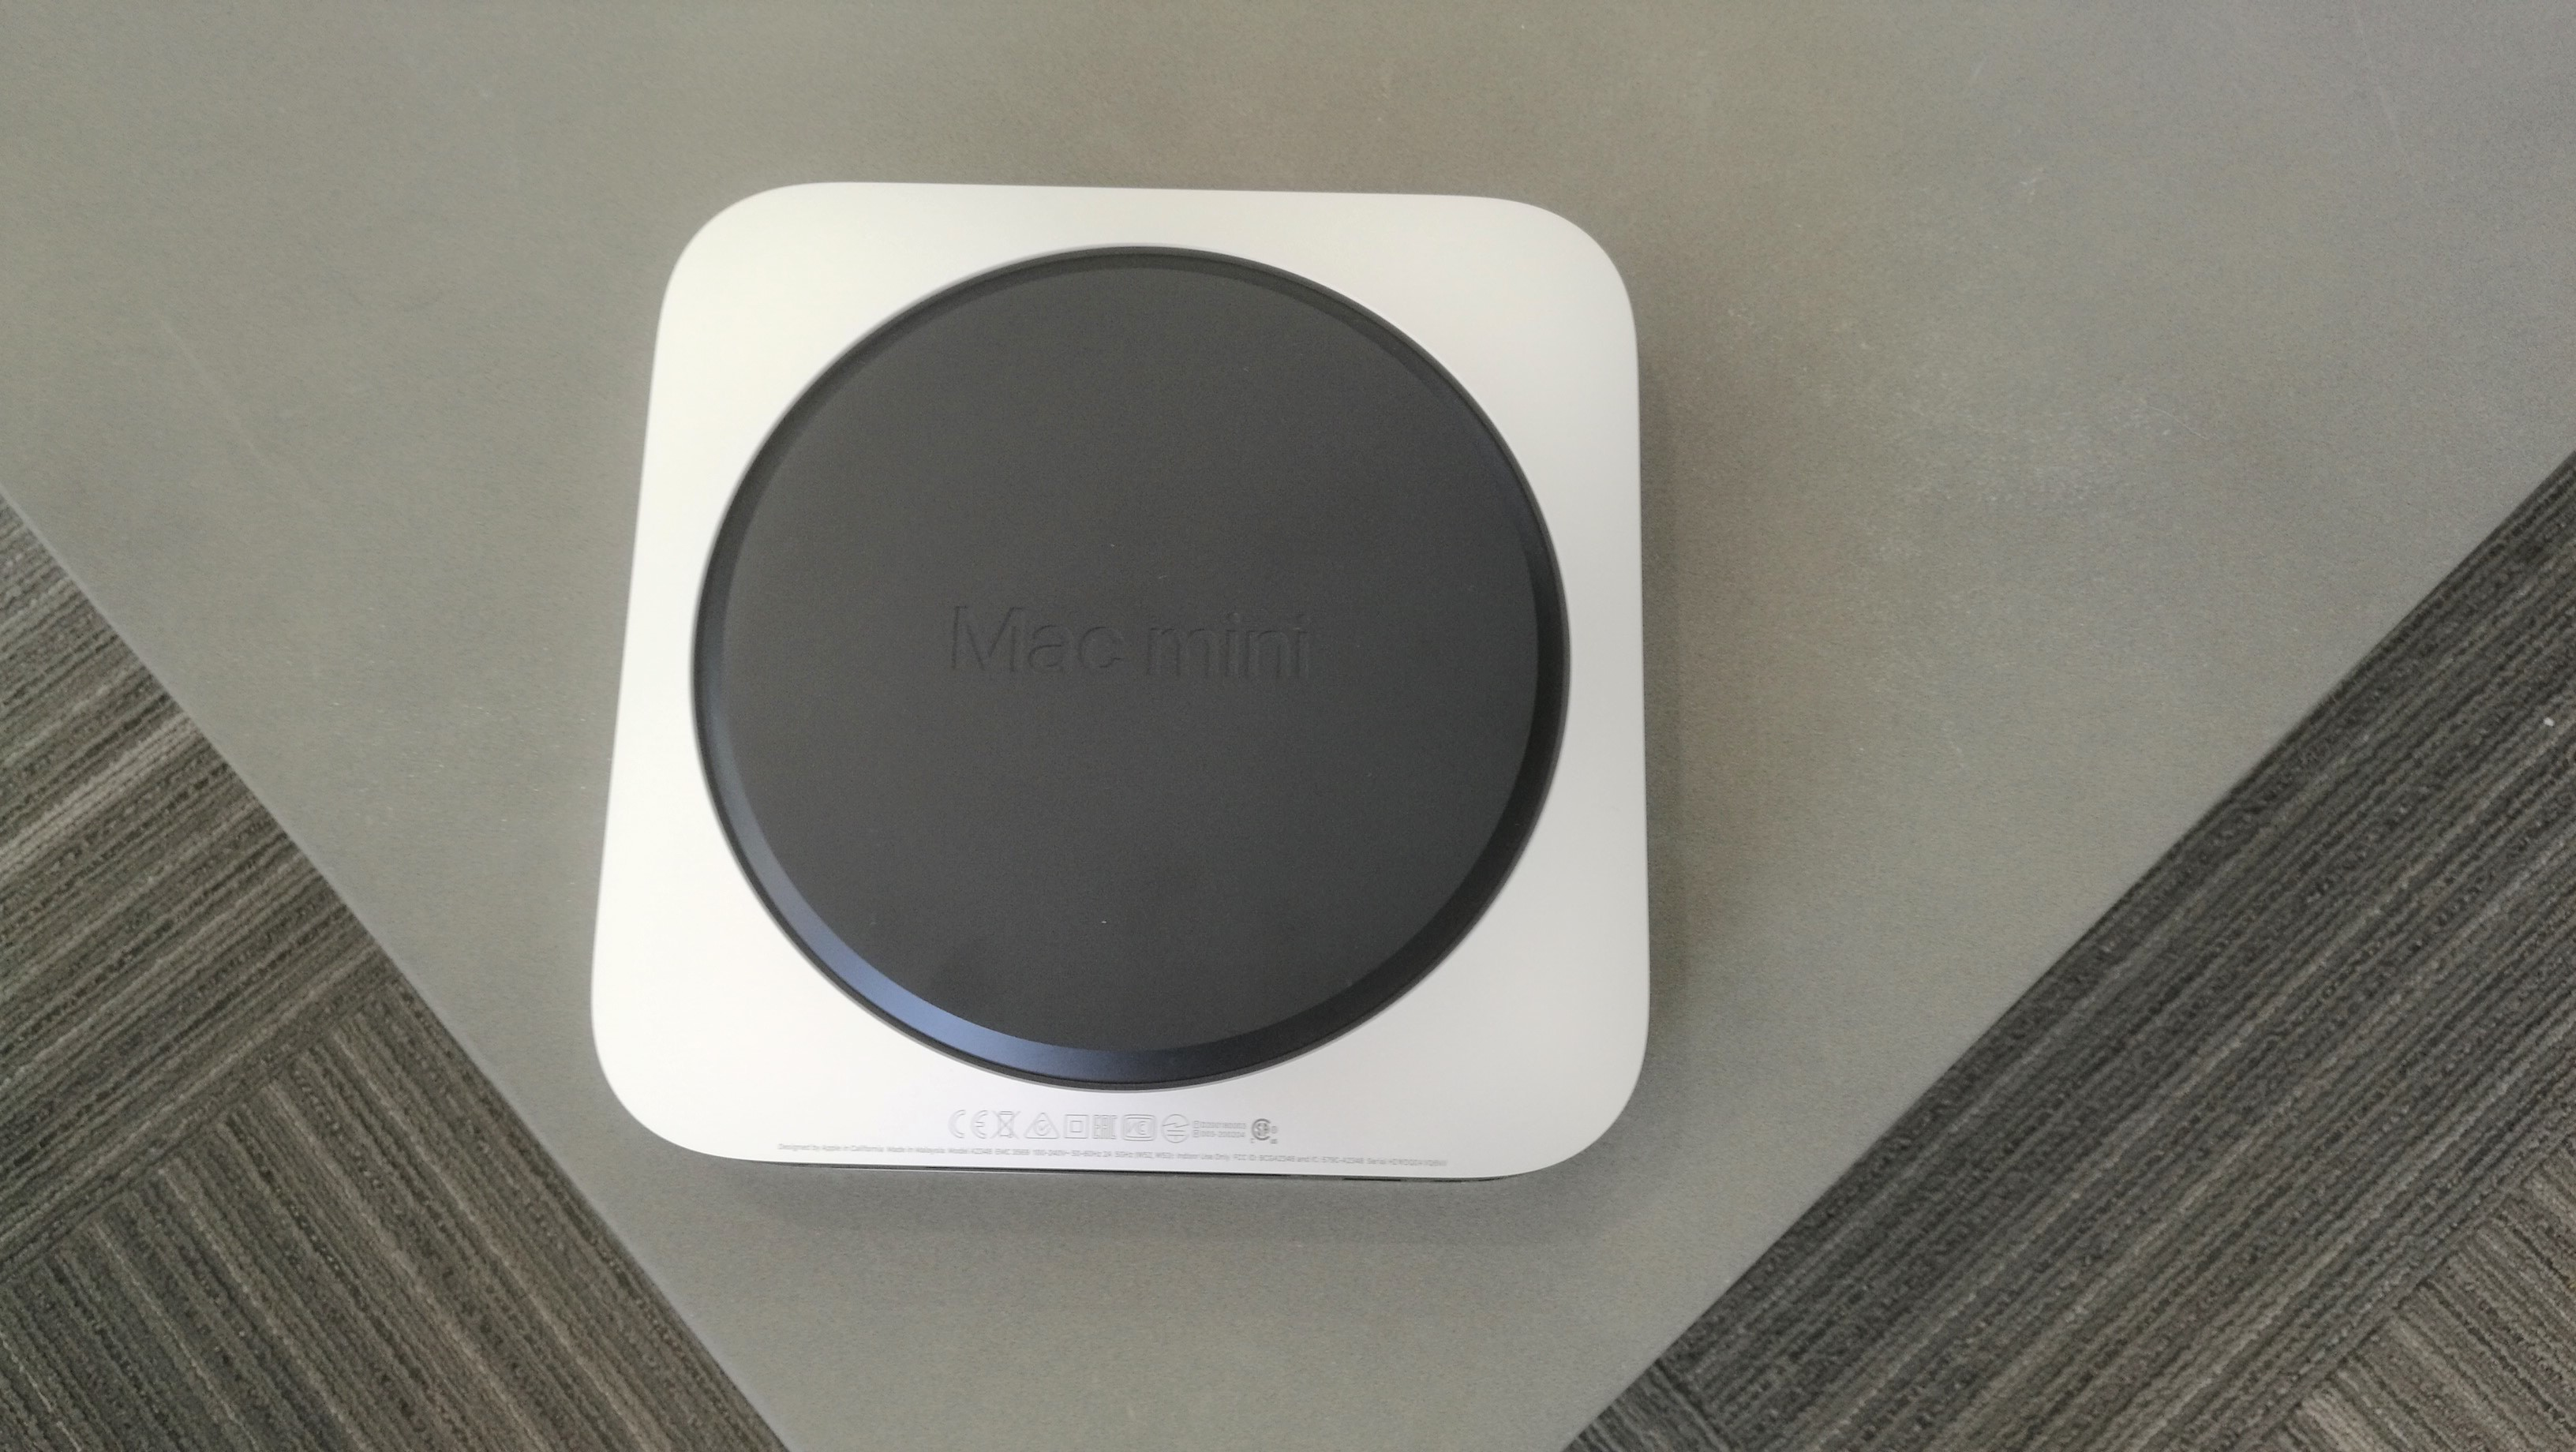 Apple Mac mini (M1, finales de 2020) Parte inferior